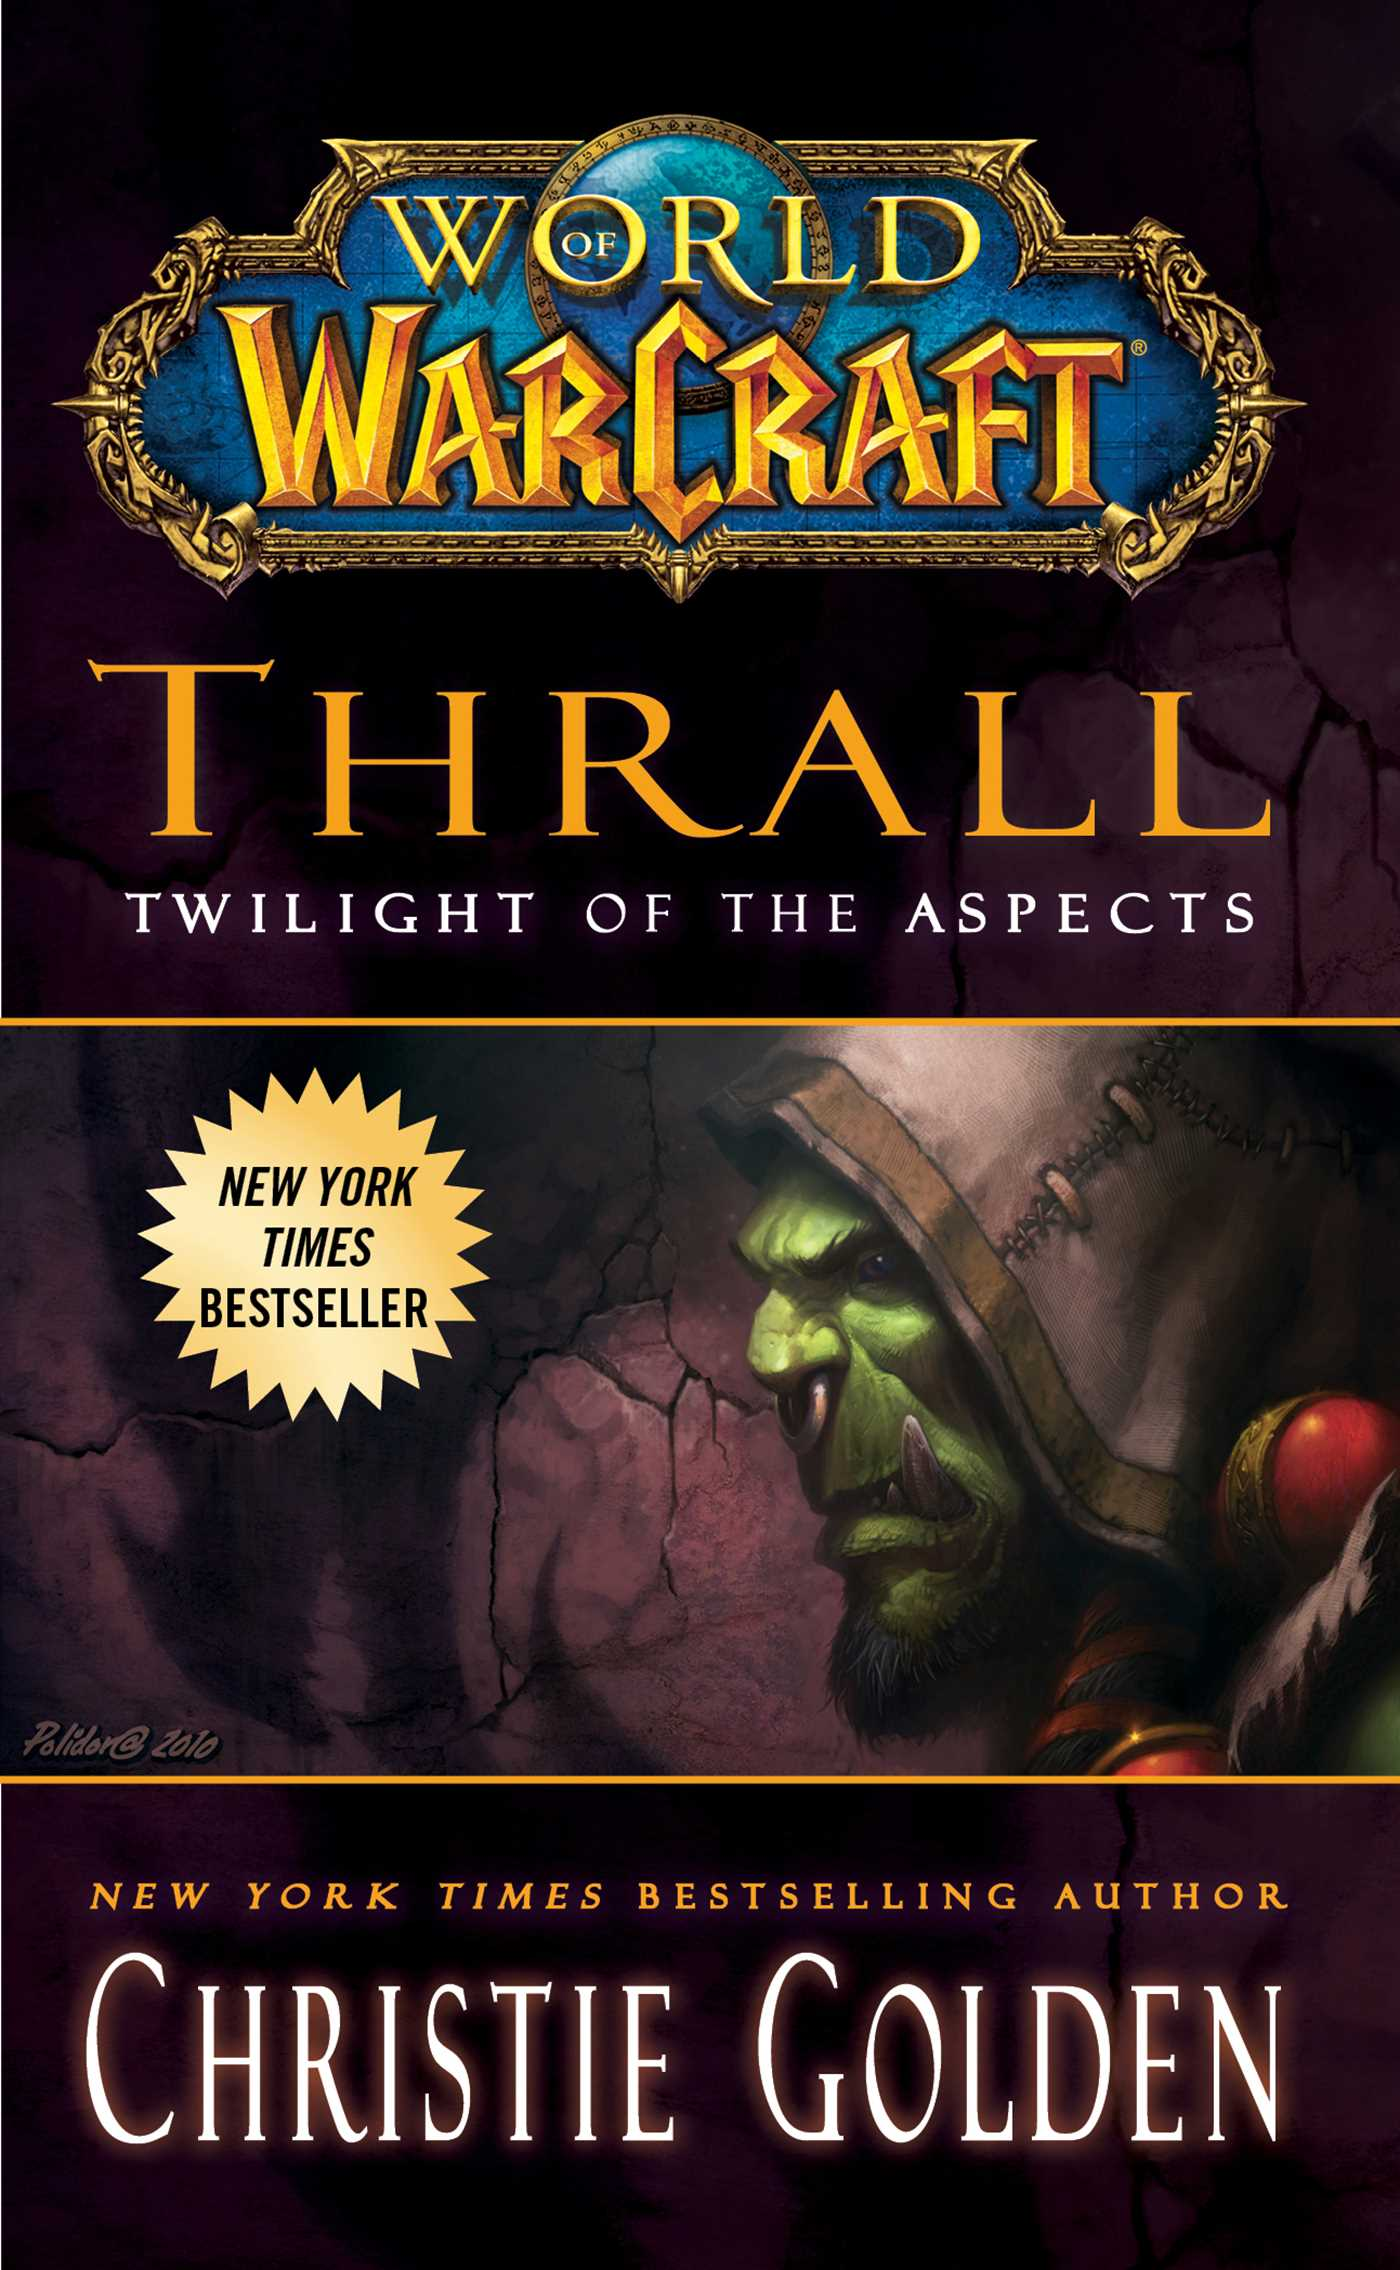 World-of-warcraft-thrall-twilight-of-the-aspects-9781439171455_hr